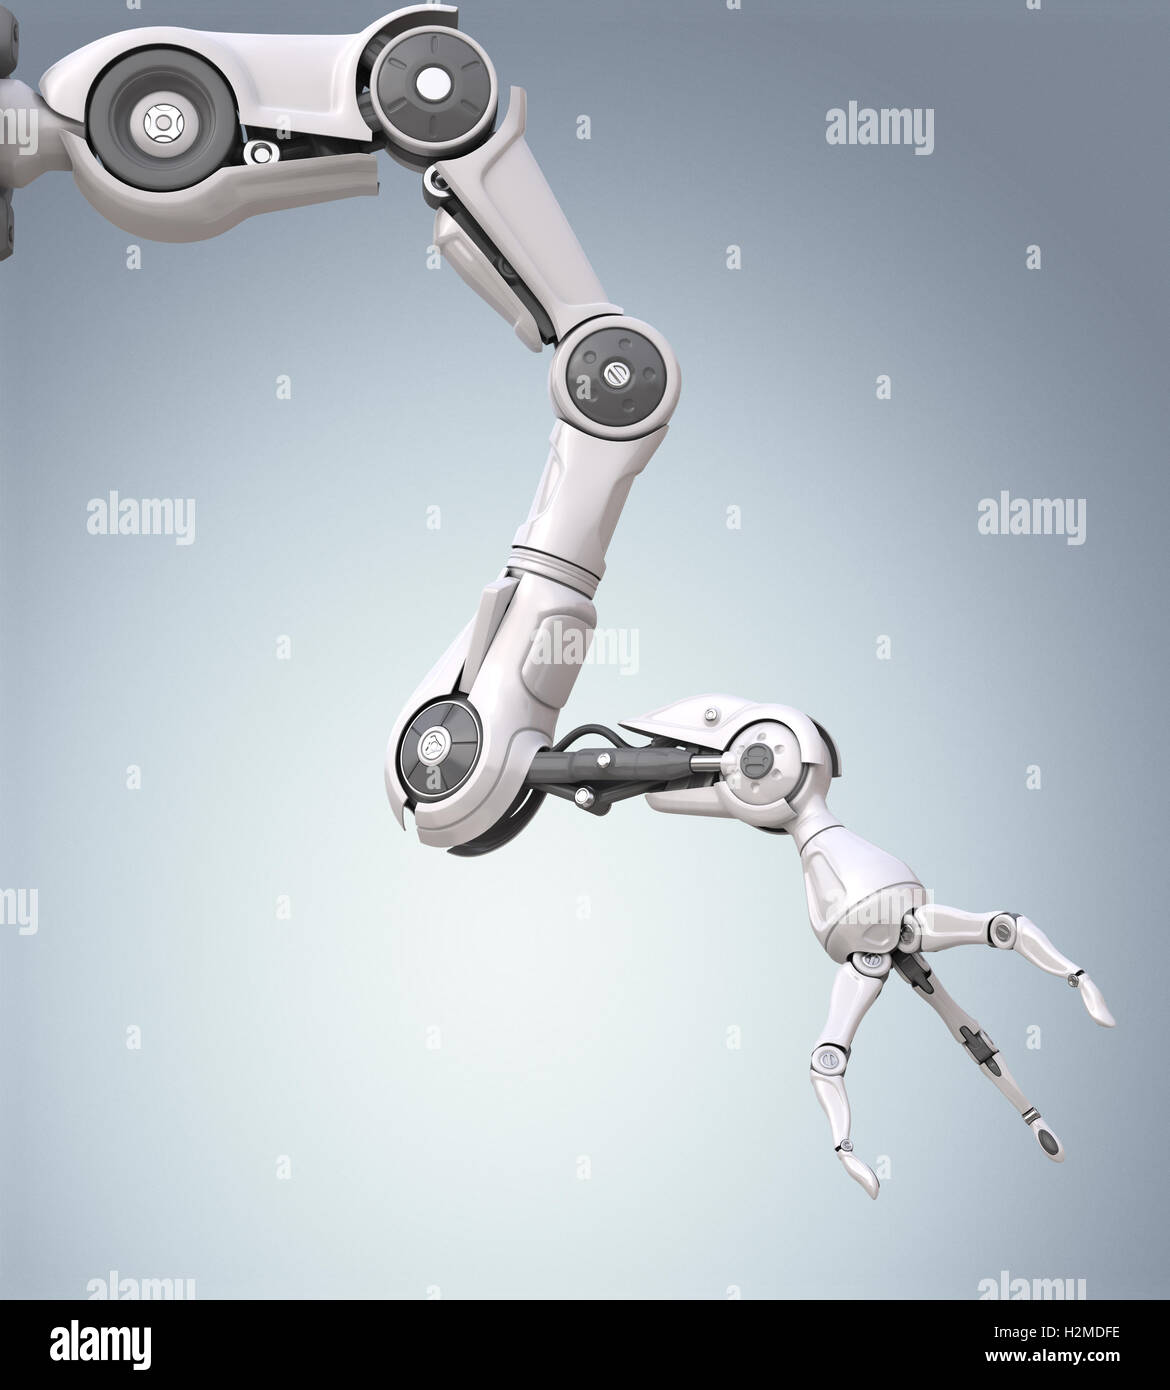 Futuristic robotic arm with mechanical seizure - Stock Image